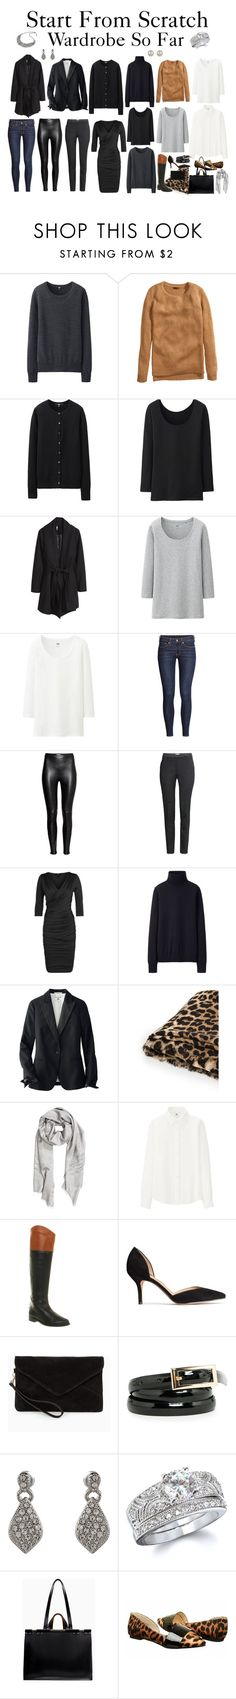 """""""Start From Scratch Wardrobe Steps 1 - 10"""" by charlotte-mcfarlane ❤ liked on Polyvore featuring Uniqlo, H&M, MANGO, Office, Accessorize, Fantasy Jewelry Box, Zara and Chinese Laundry"""